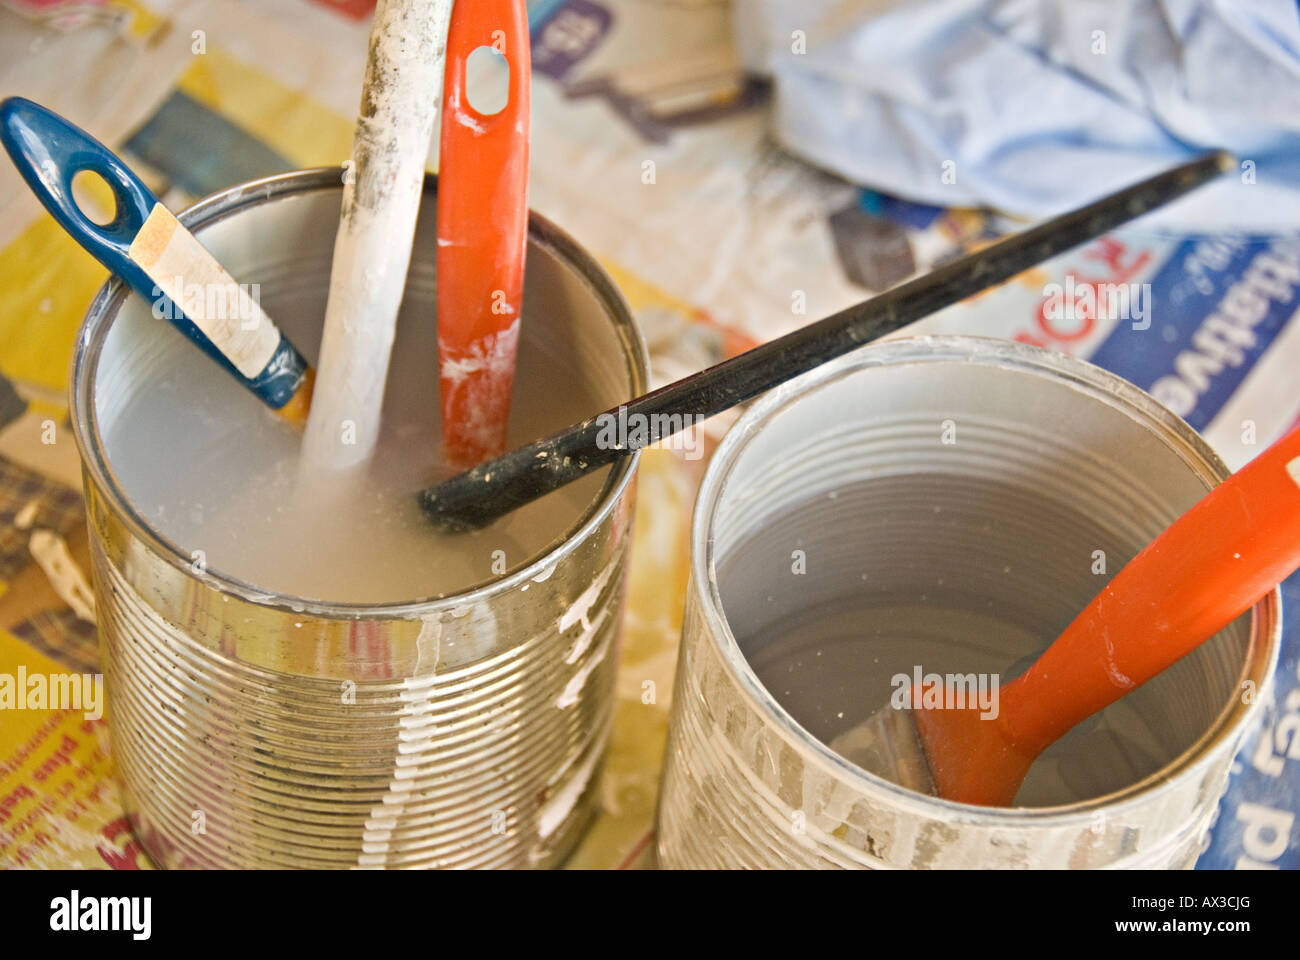 Paintbrushes soak in  water cans - Stock Image